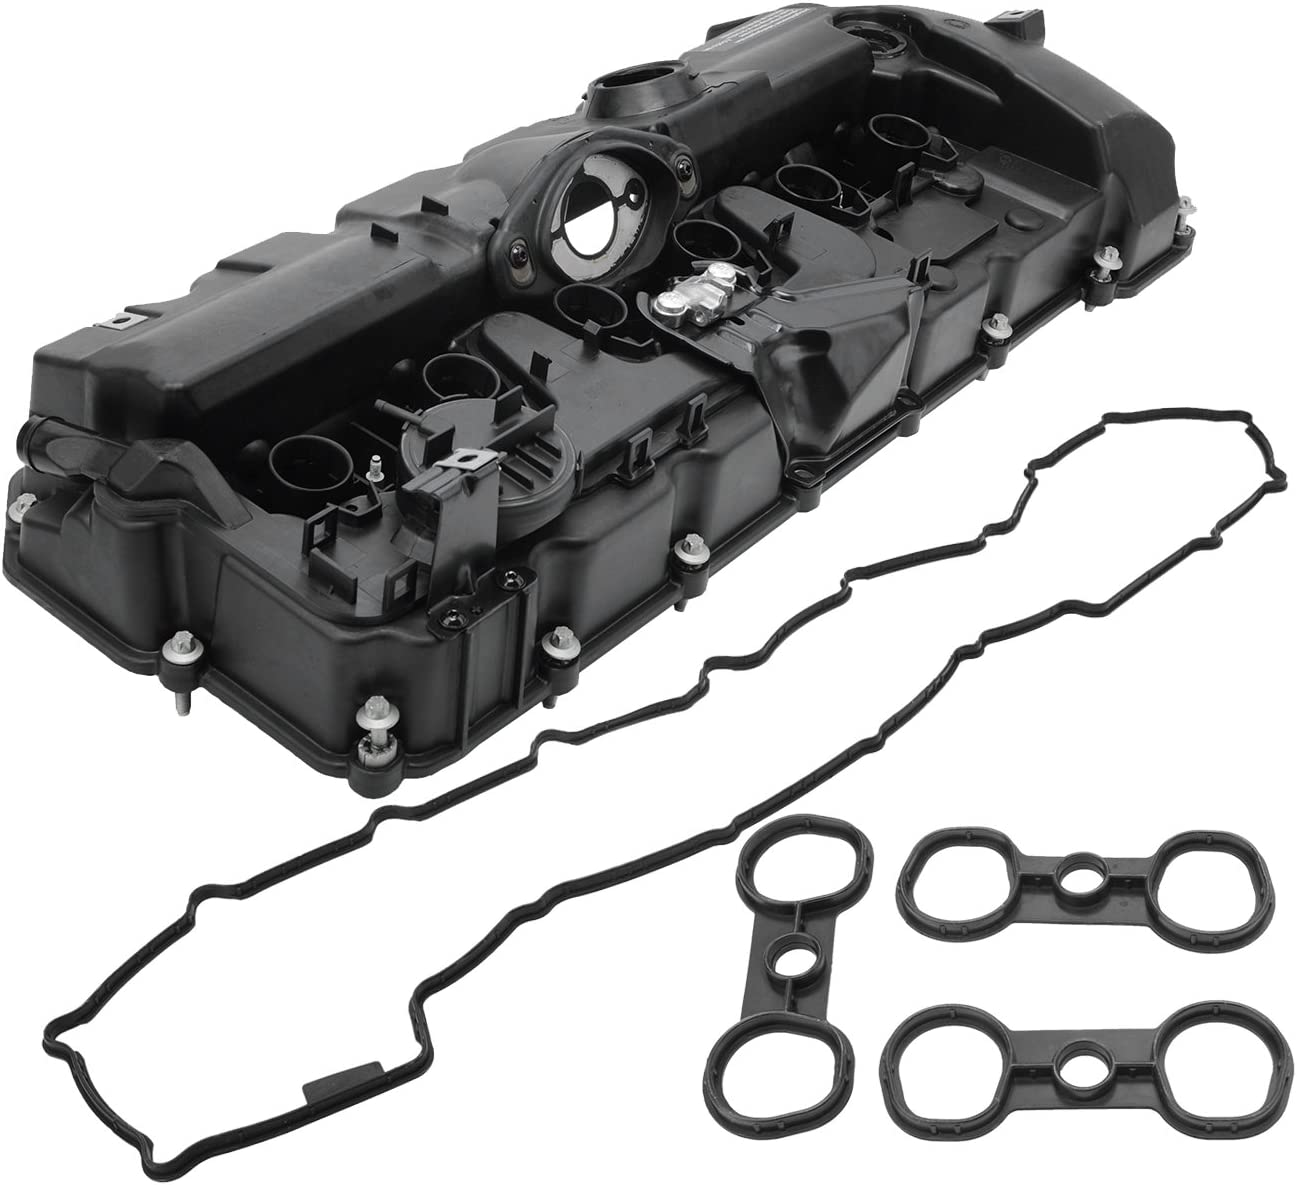 11127552281 For BMW 128i 328i 528i X3 X5 Z4 E60 E70 Engine Valve Cover w// Gasket